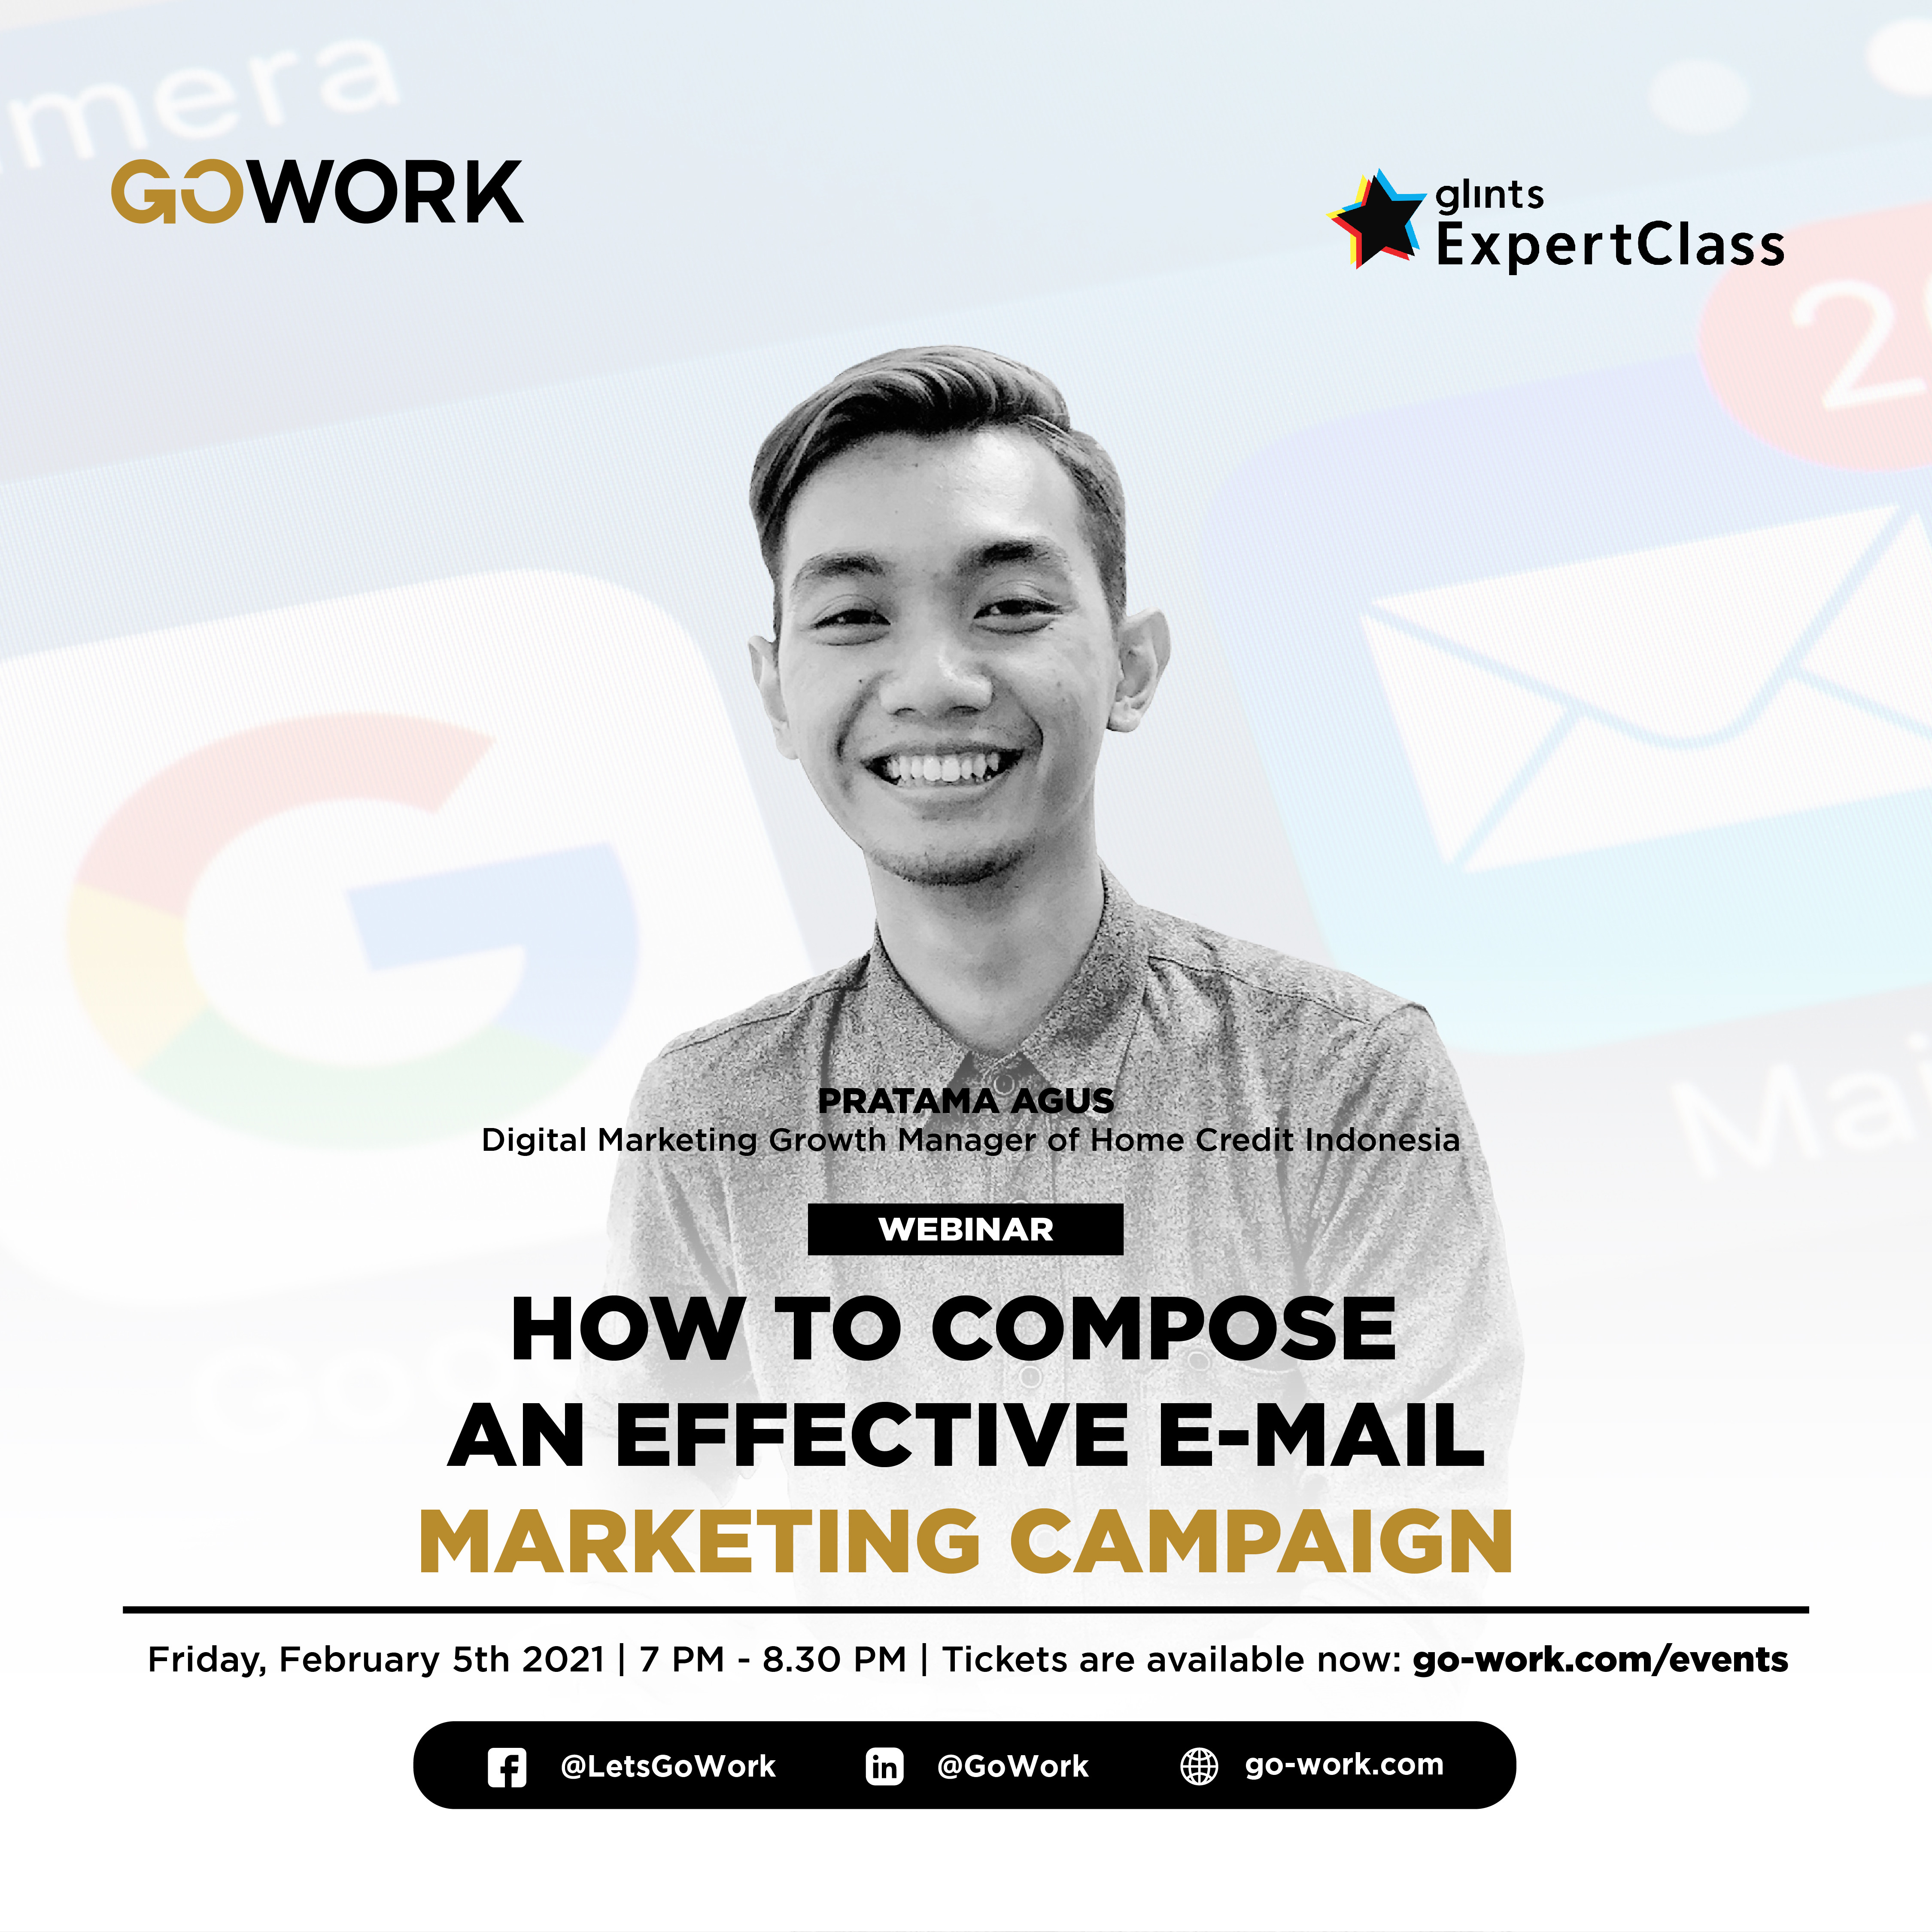 How to Compose an Effective E-Mail Marketing Campaign